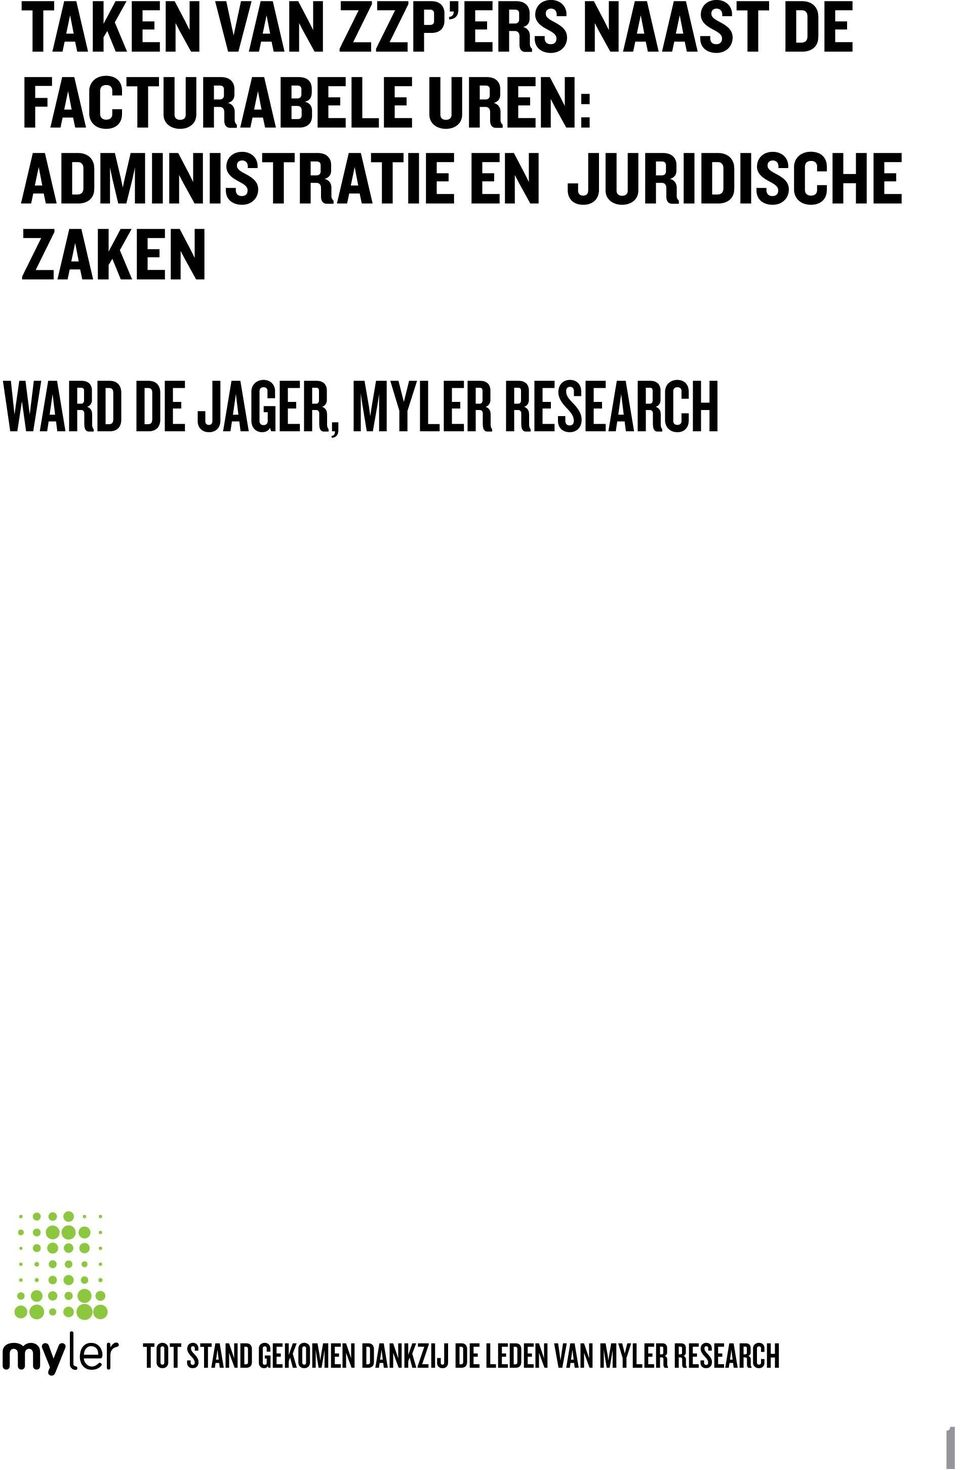 Ward de jager, myler research Tot stand